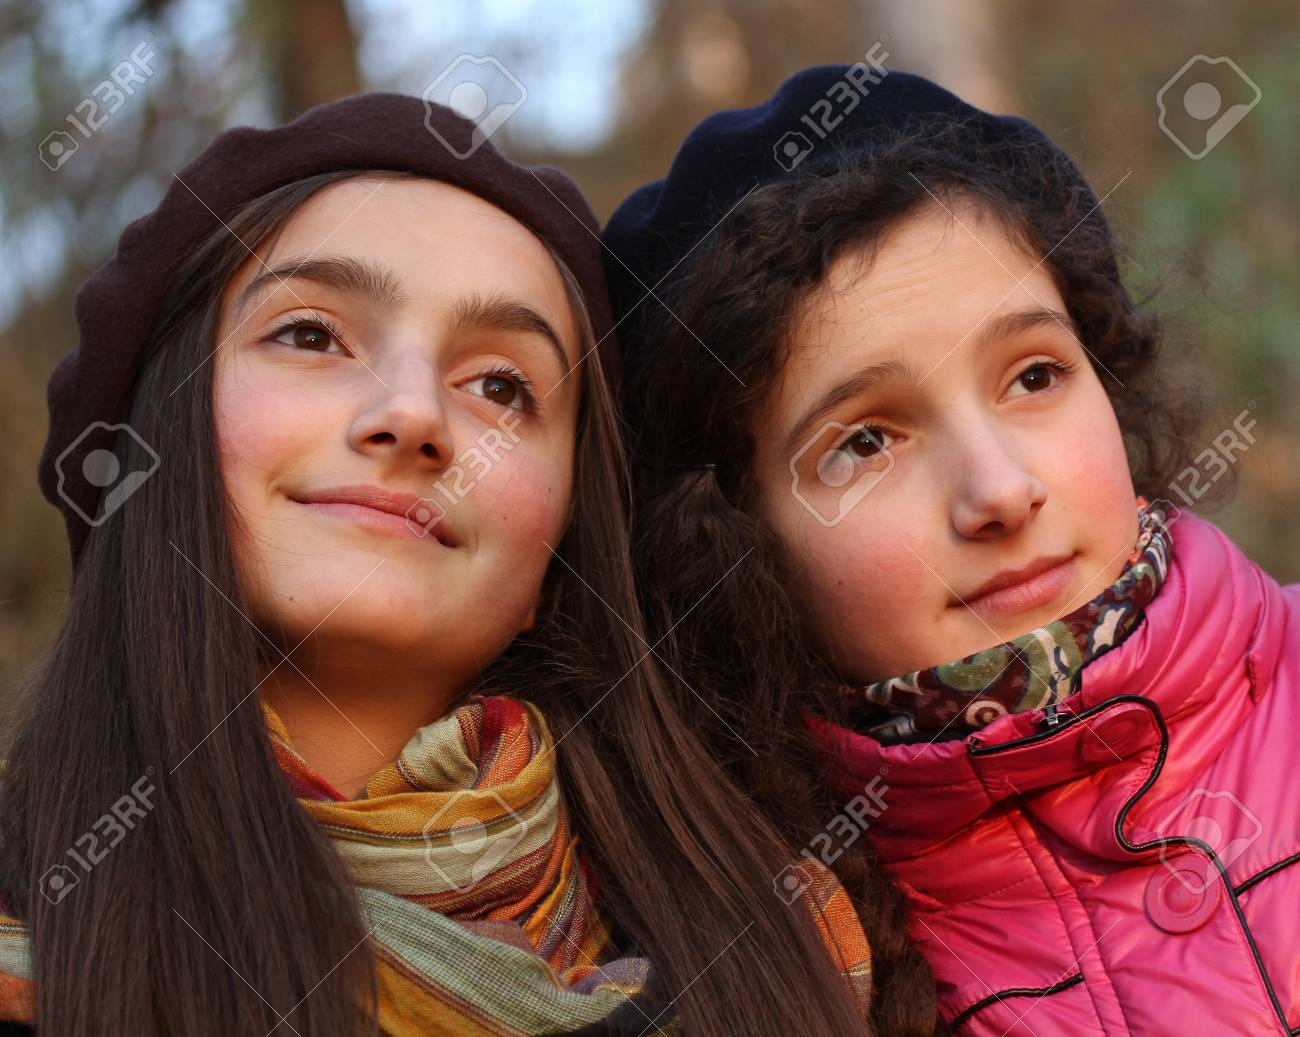 Portraits of two beautiful girls in the park. Stock Photo - 11474469